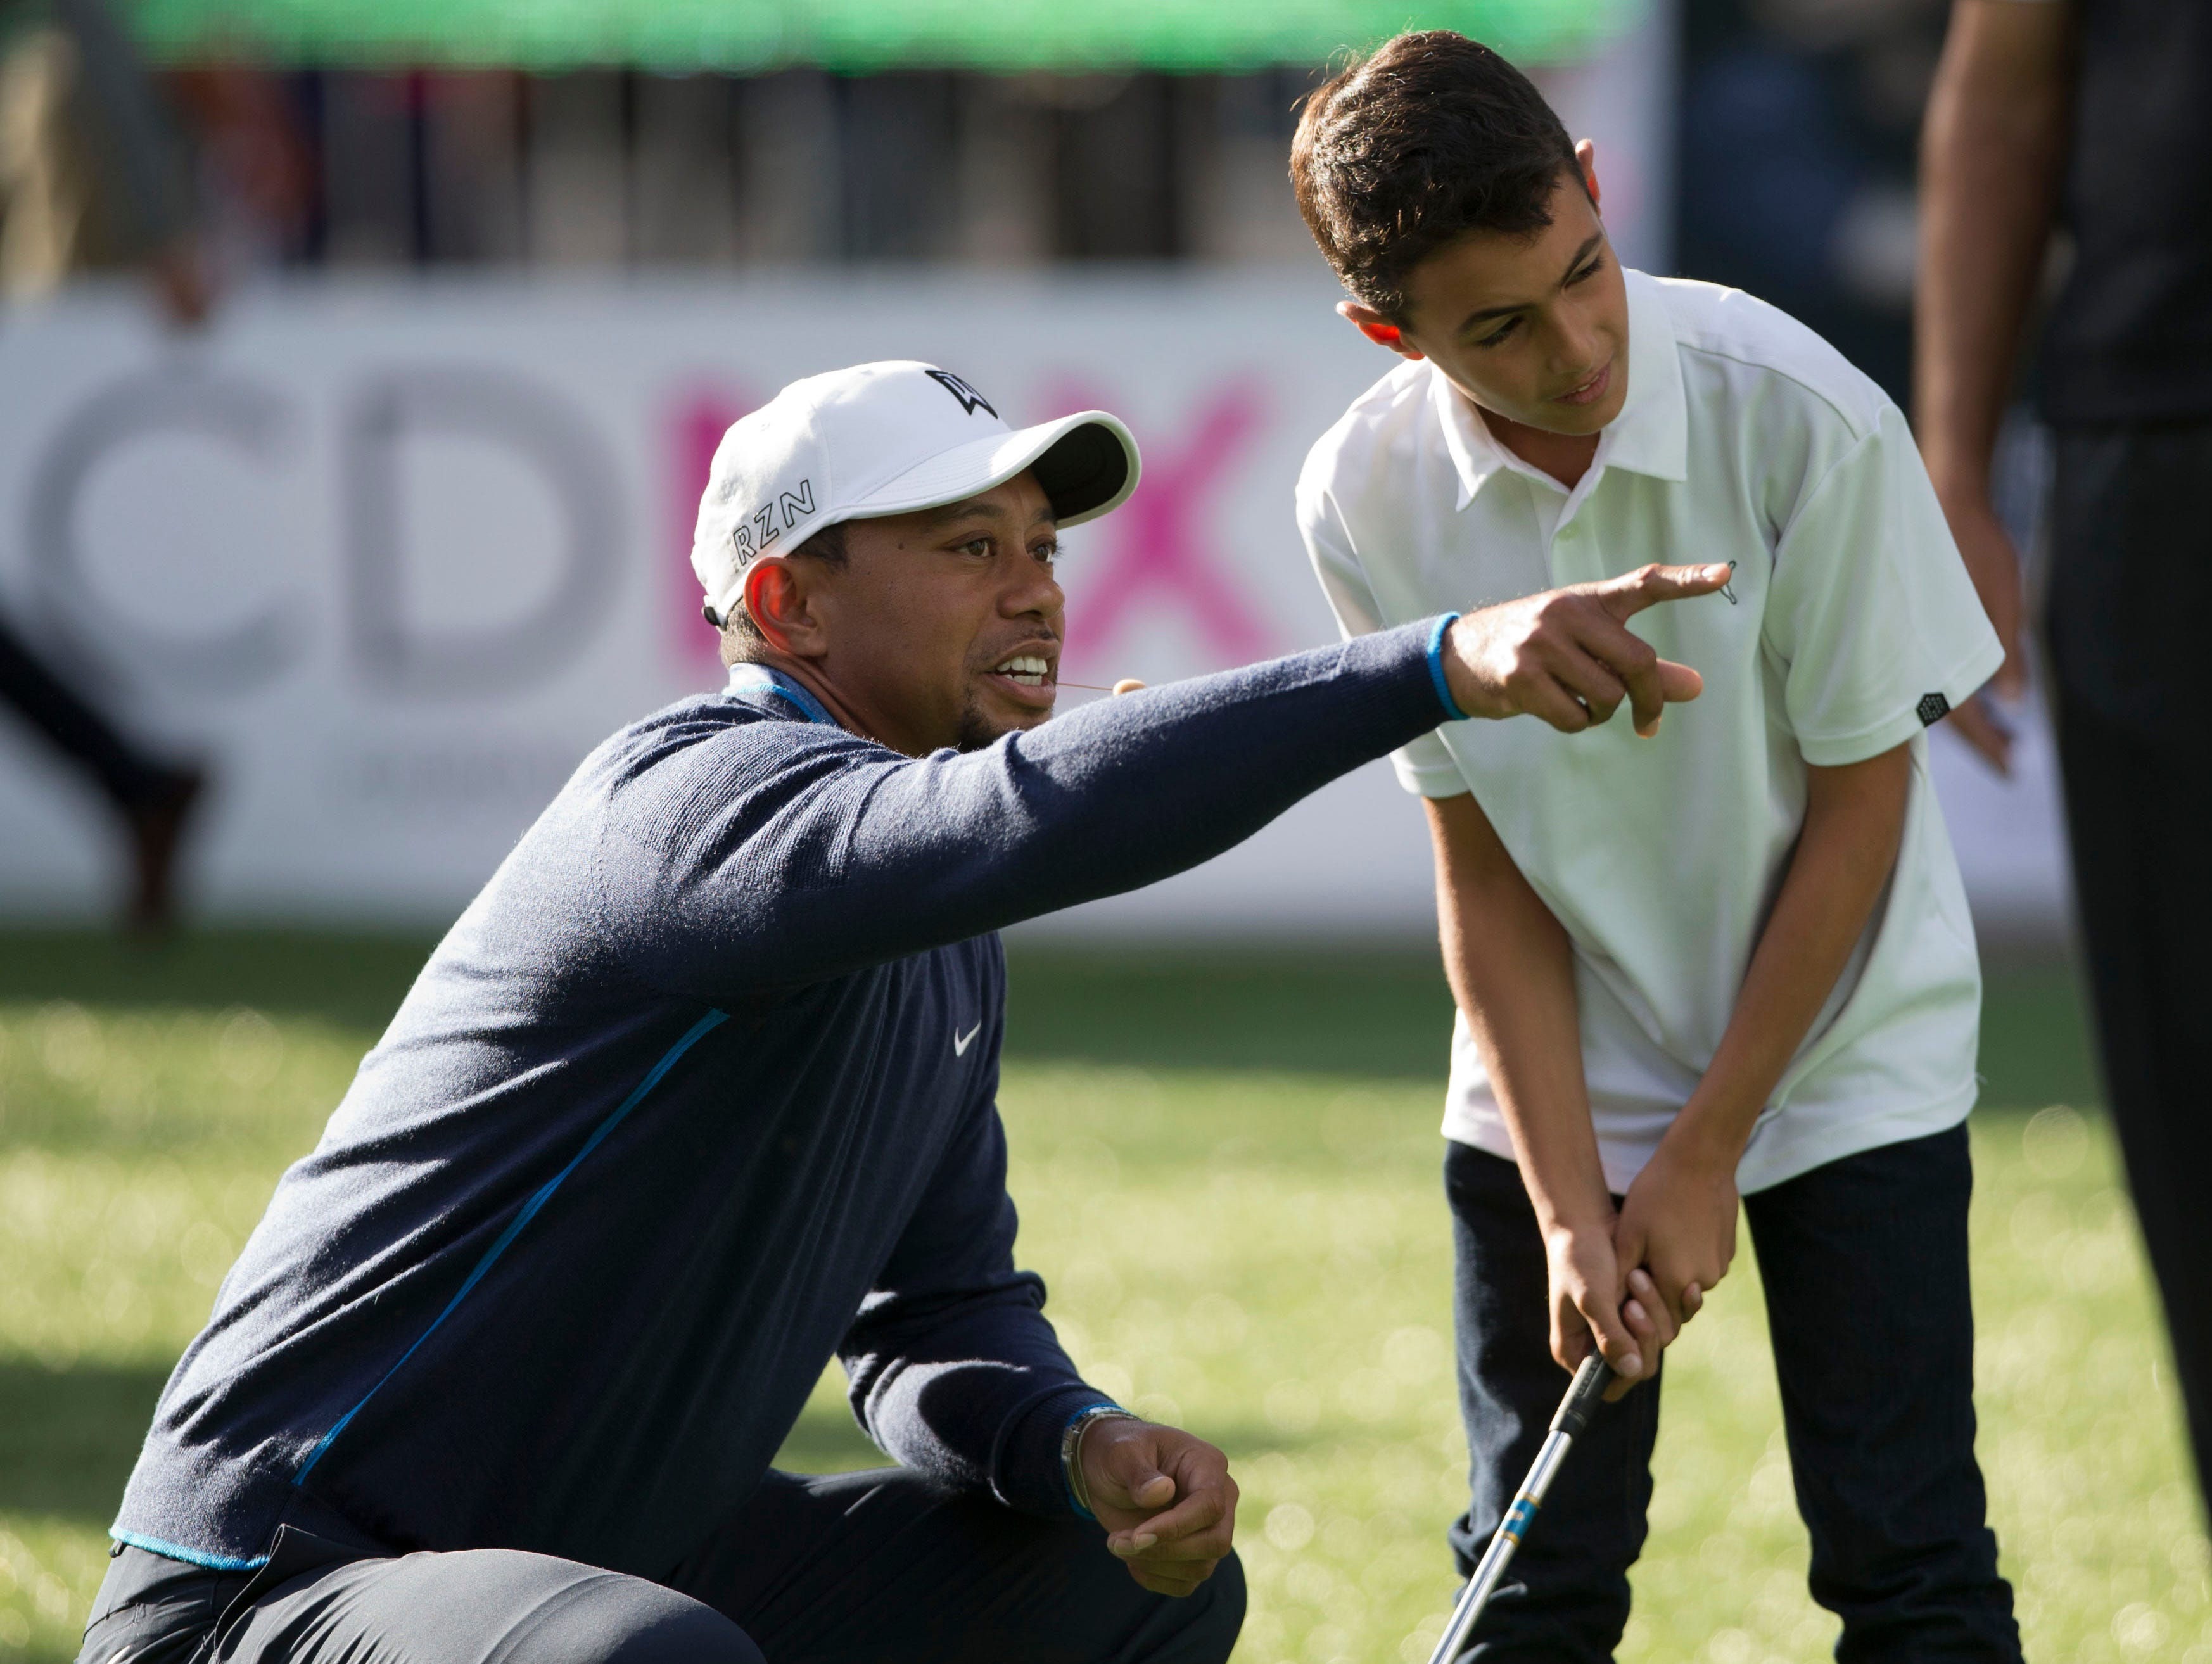 Woods has another back surgery in October 2015. Shown here Woods gives pointers to  a young golfer, during a promotional clinic as part of the Bridgestone America's Golf Cup in Mexico City on  Oct. 20, 2015.